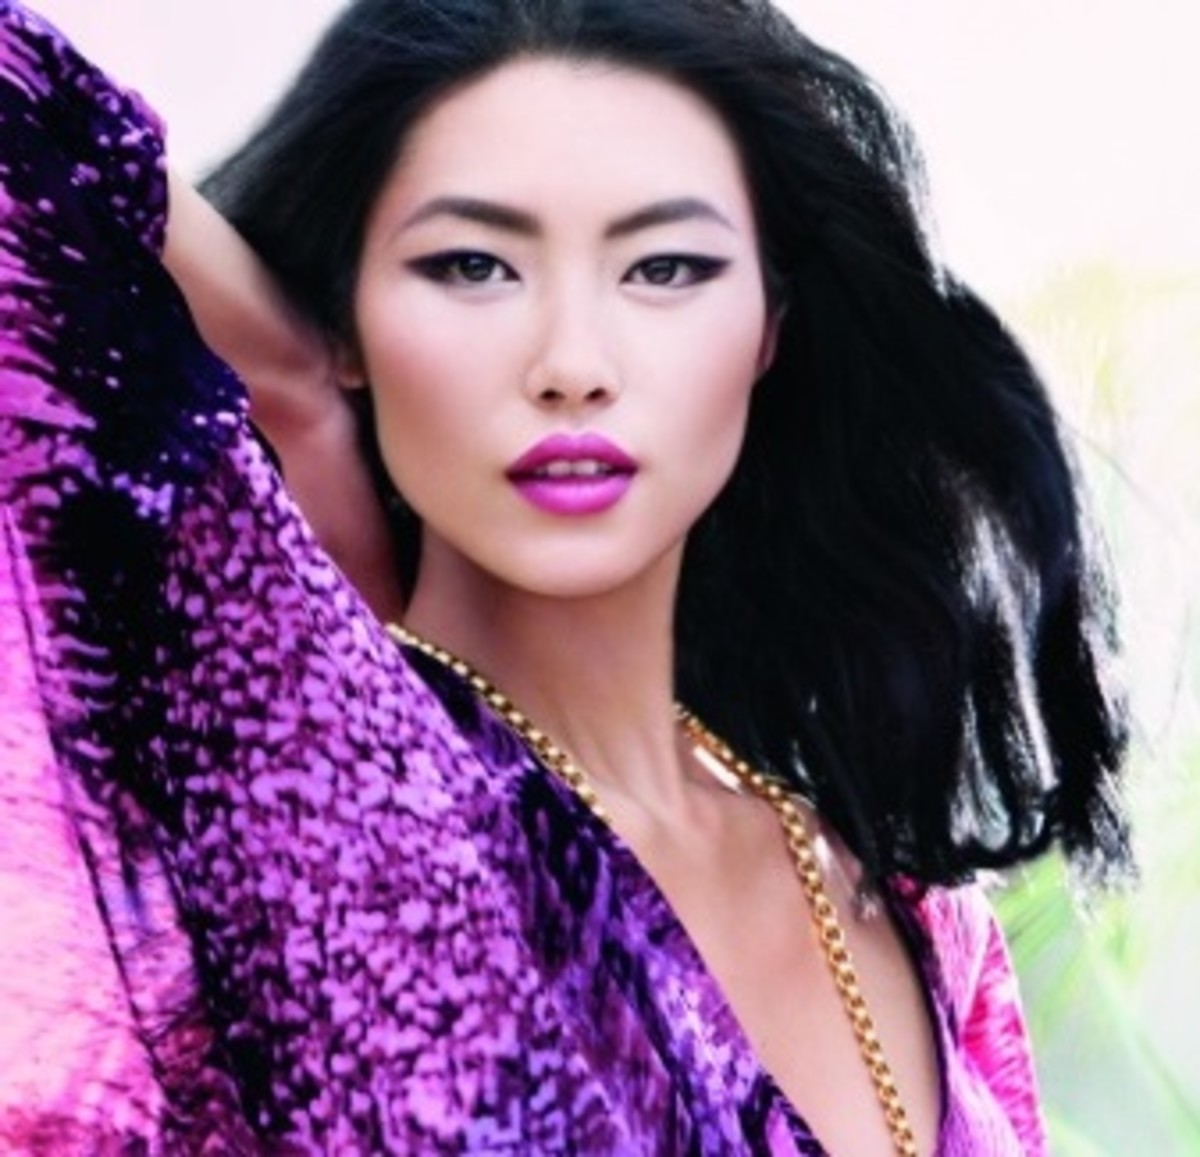 The Best Lipstick Colors for Asian Skin